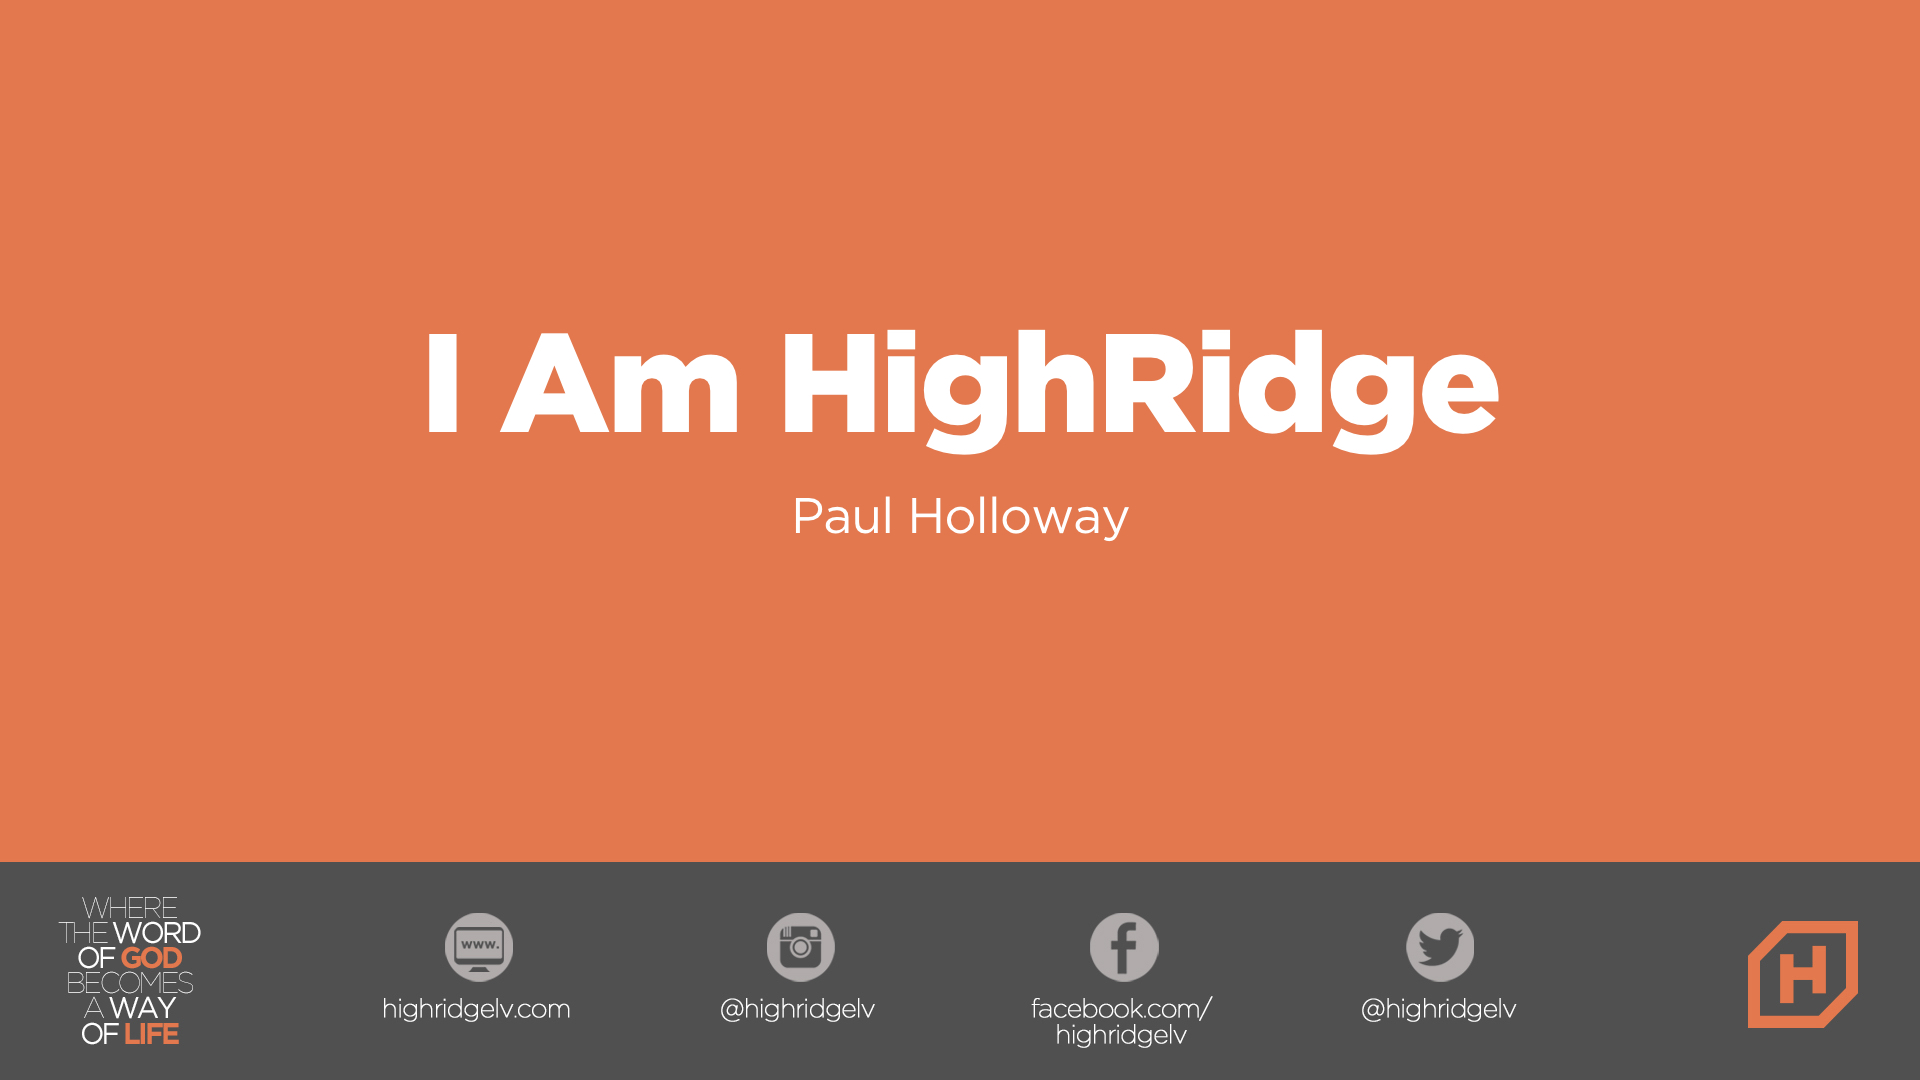 I Am HighRidge